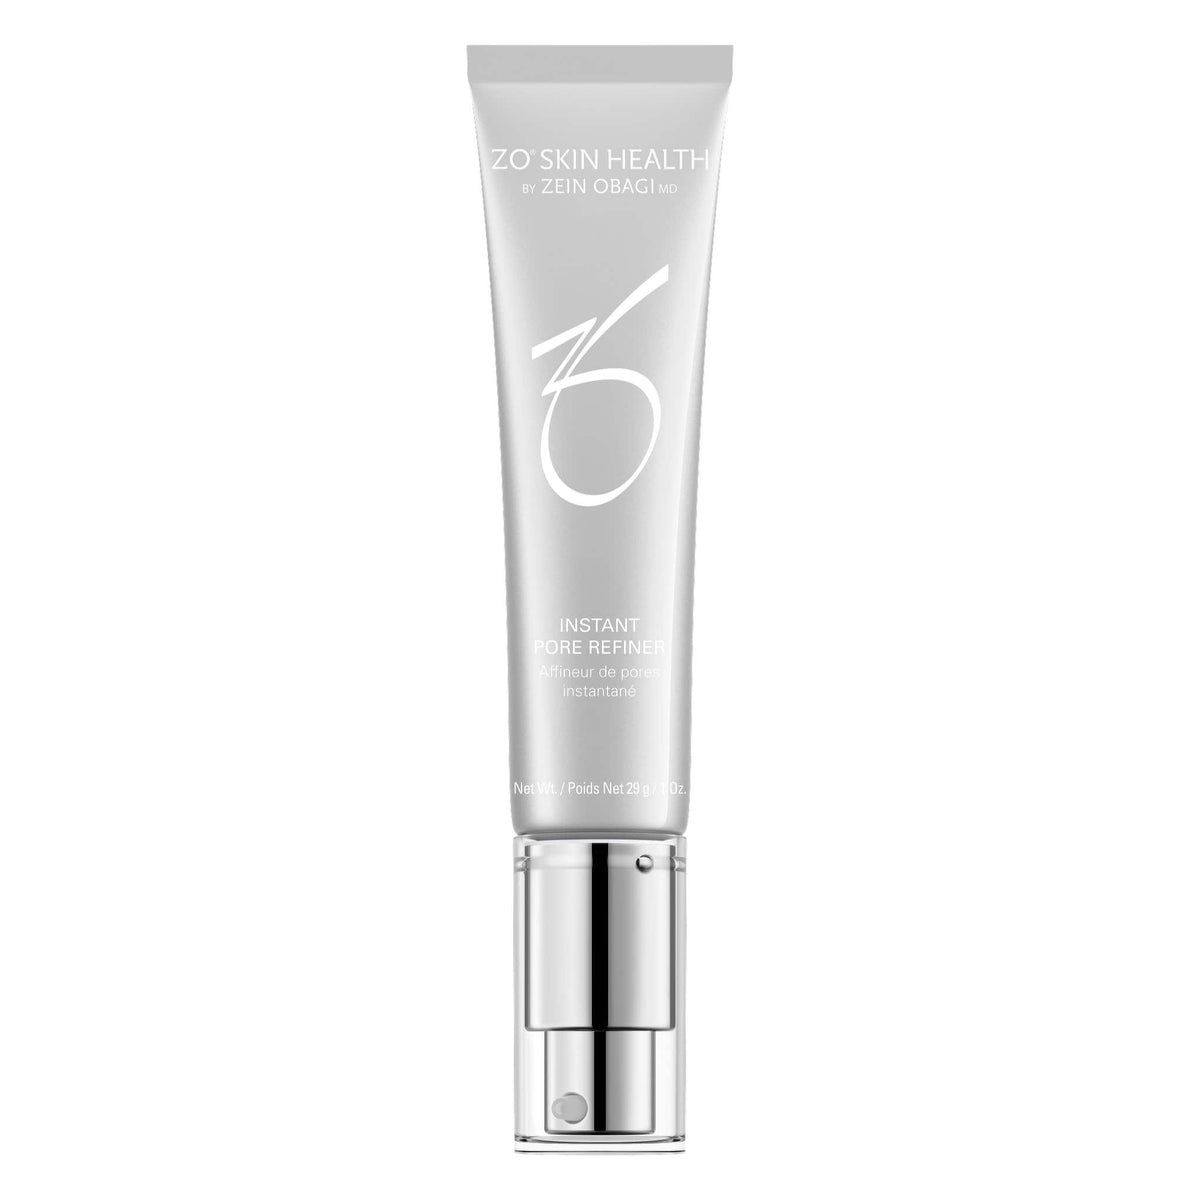 ZO® SKIN HEALTH - INSTANT PORE REFINER - Beauty Nook